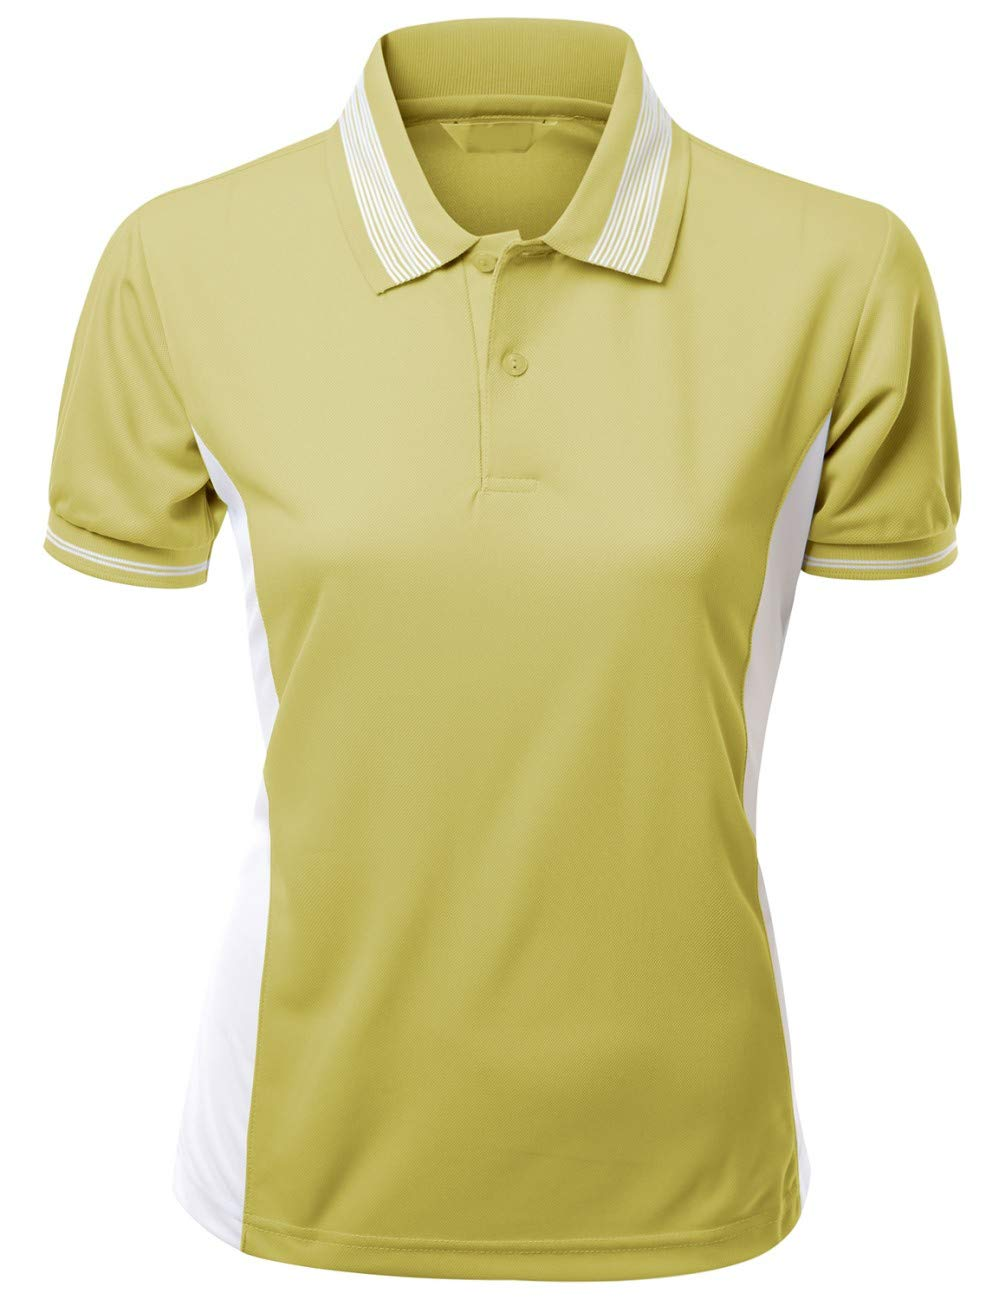 Womens Coolmax Fabric Sporty Feel Polo T-Shirt with Collar Design